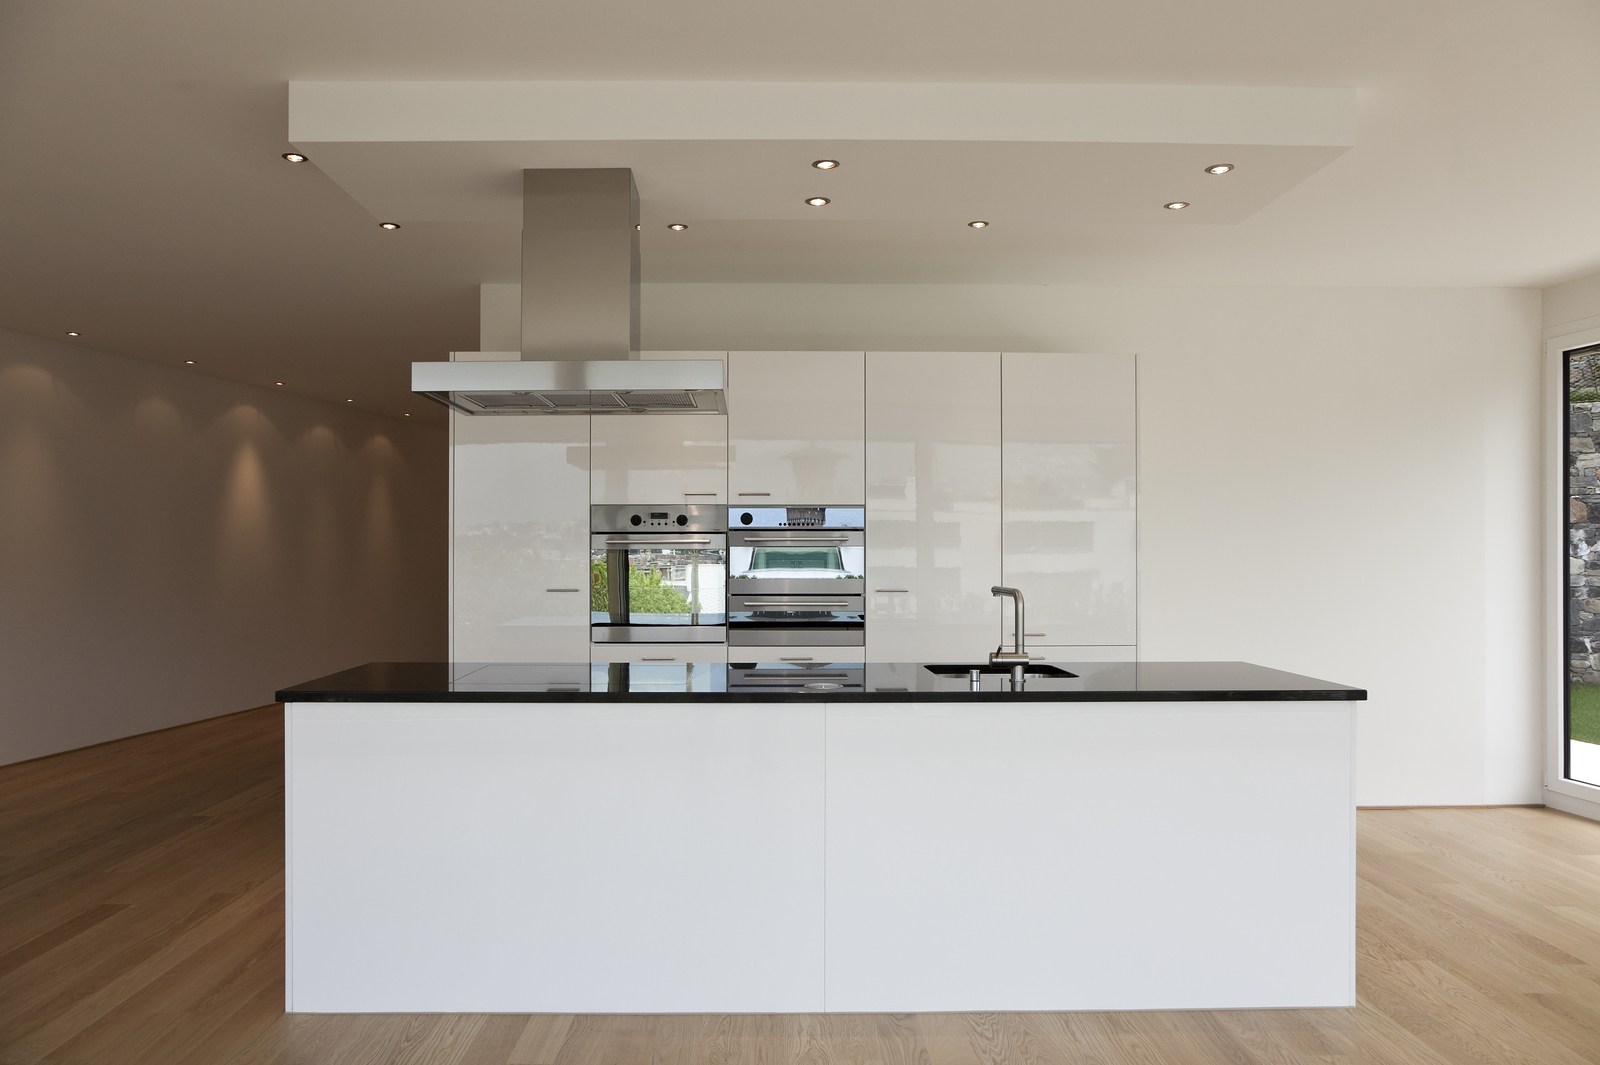 """Condo Kitchen  -  Combination of lacquered and low sheen cabinetry, built-in fridge and ovens, polished chrome plumbing fixtures and appliances, built-in cooktop flush in solid black engineered stone countertop. White oiled 5"""" wide oak plank floor. Polished chrome cabinet handles."""